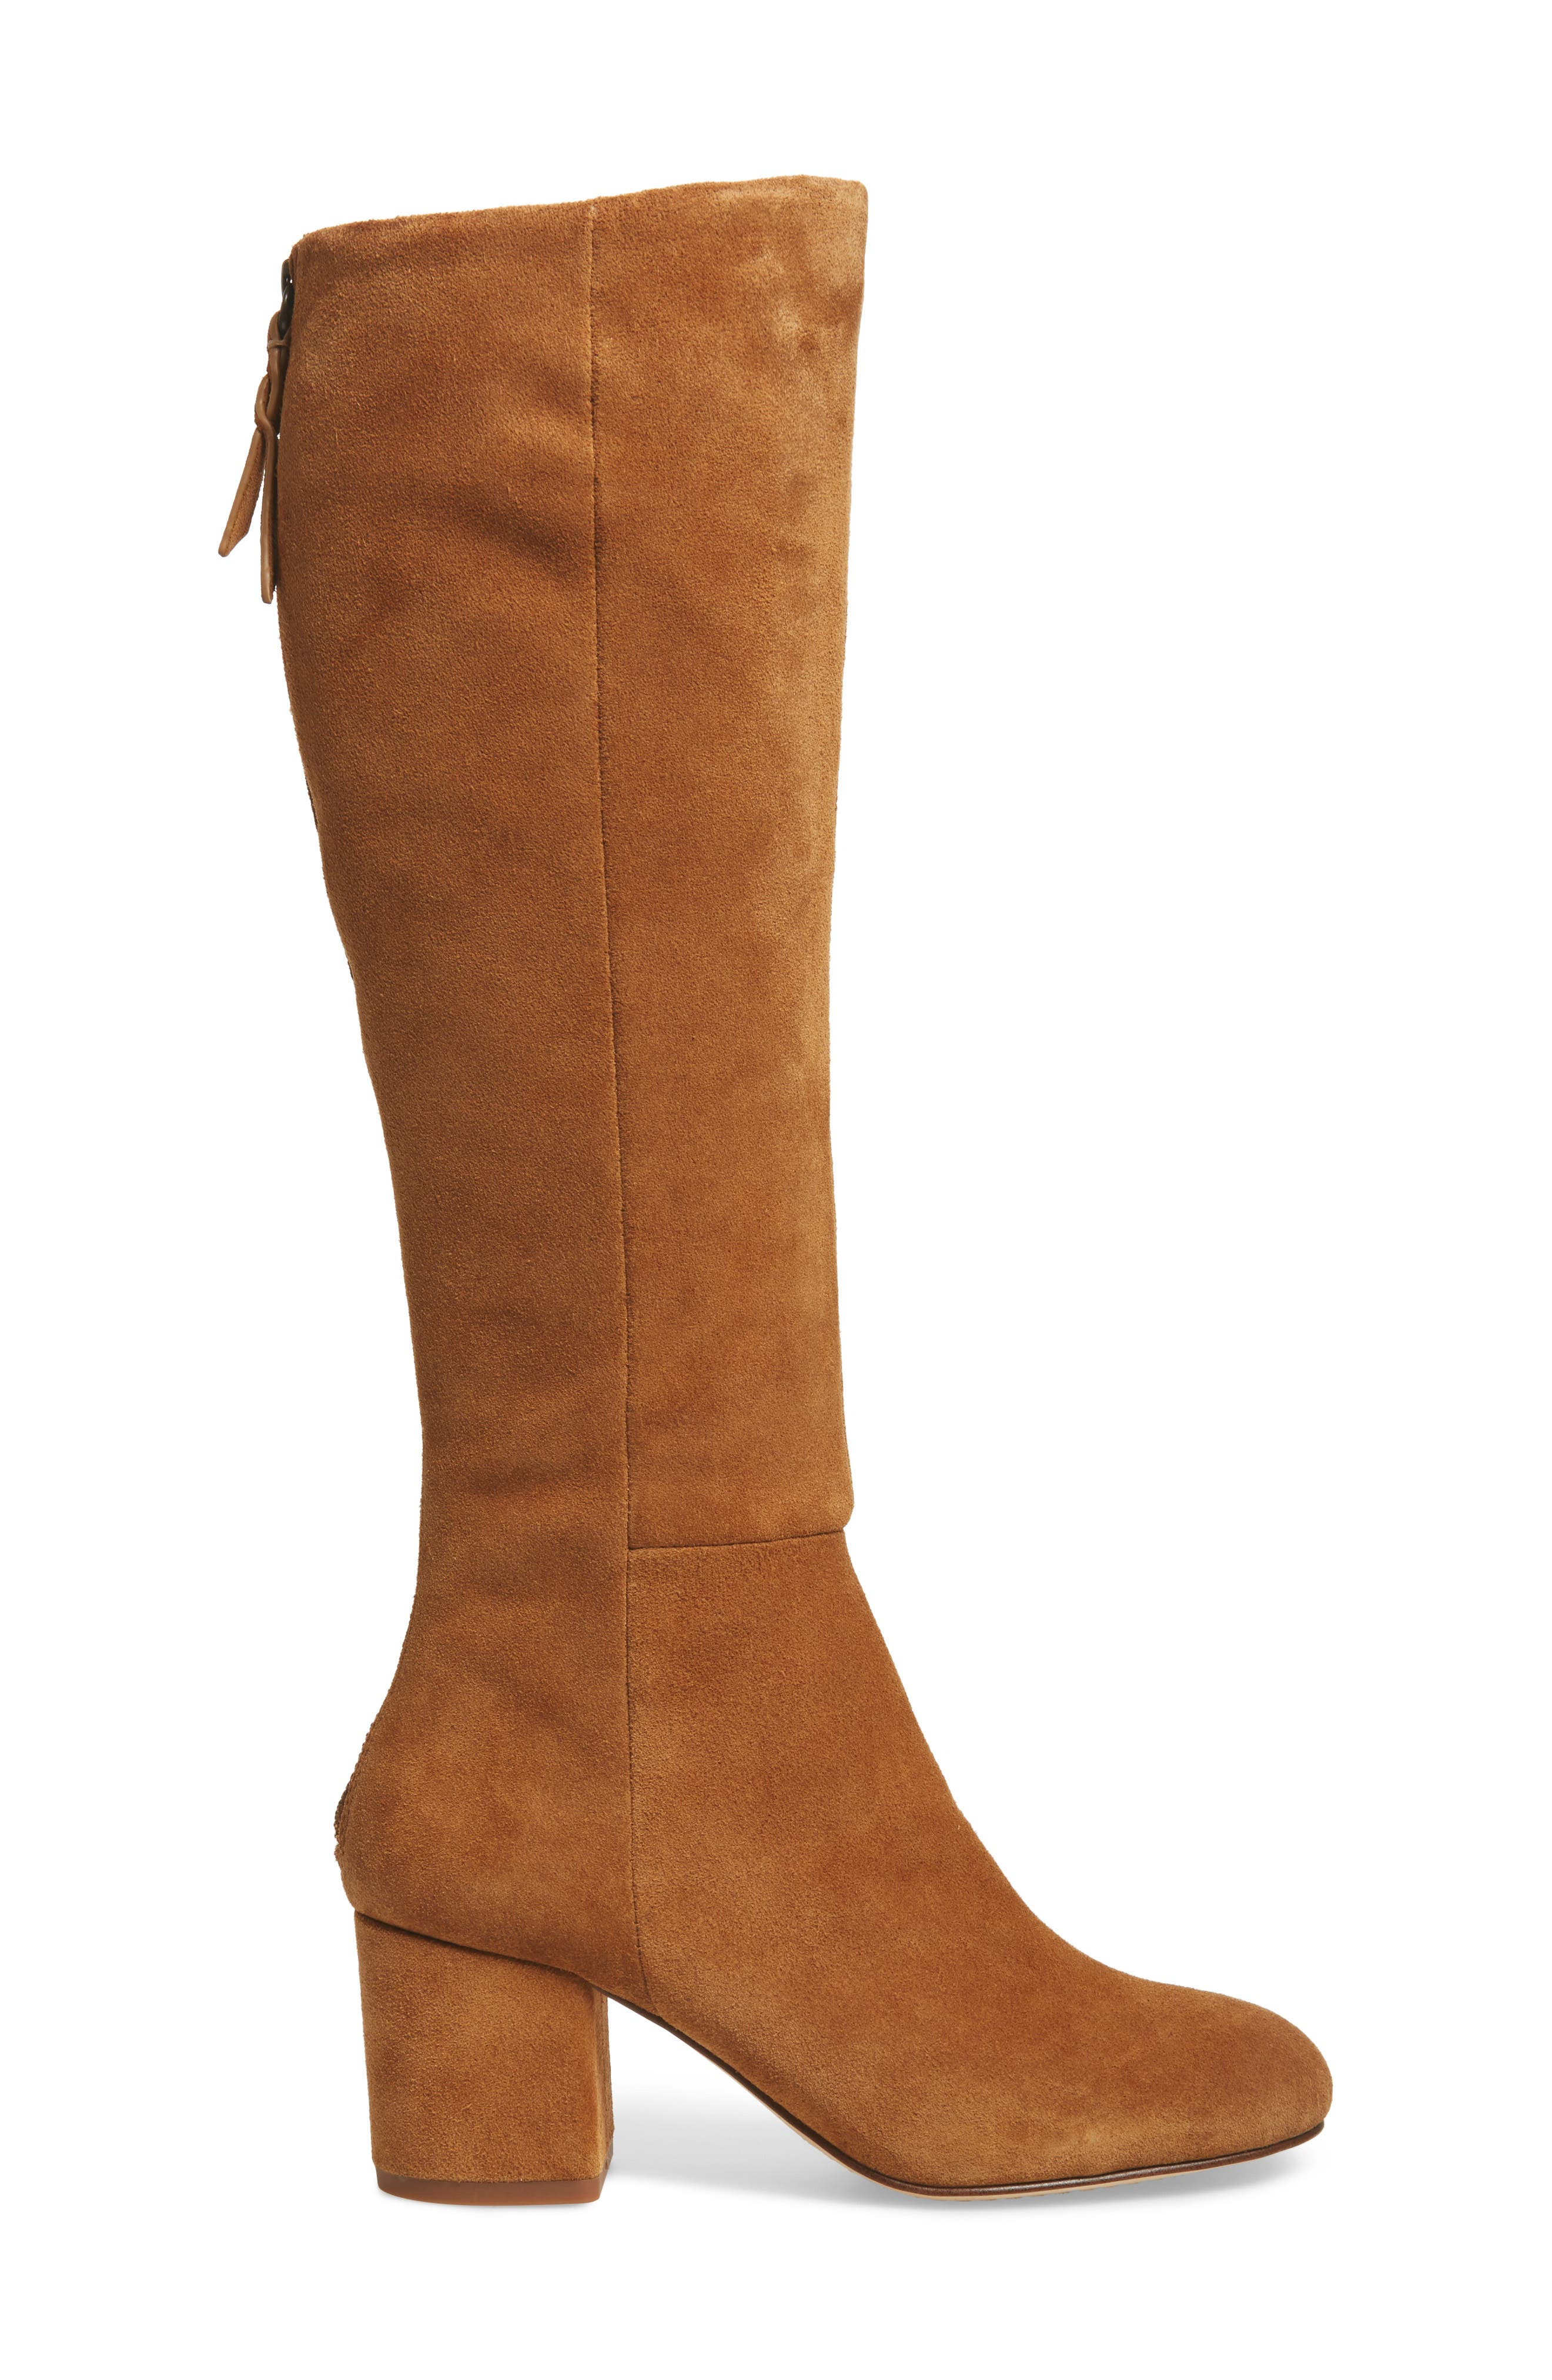 Danise Knee High Boot,                             Alternate thumbnail 3, color,                             Chestnut Suede